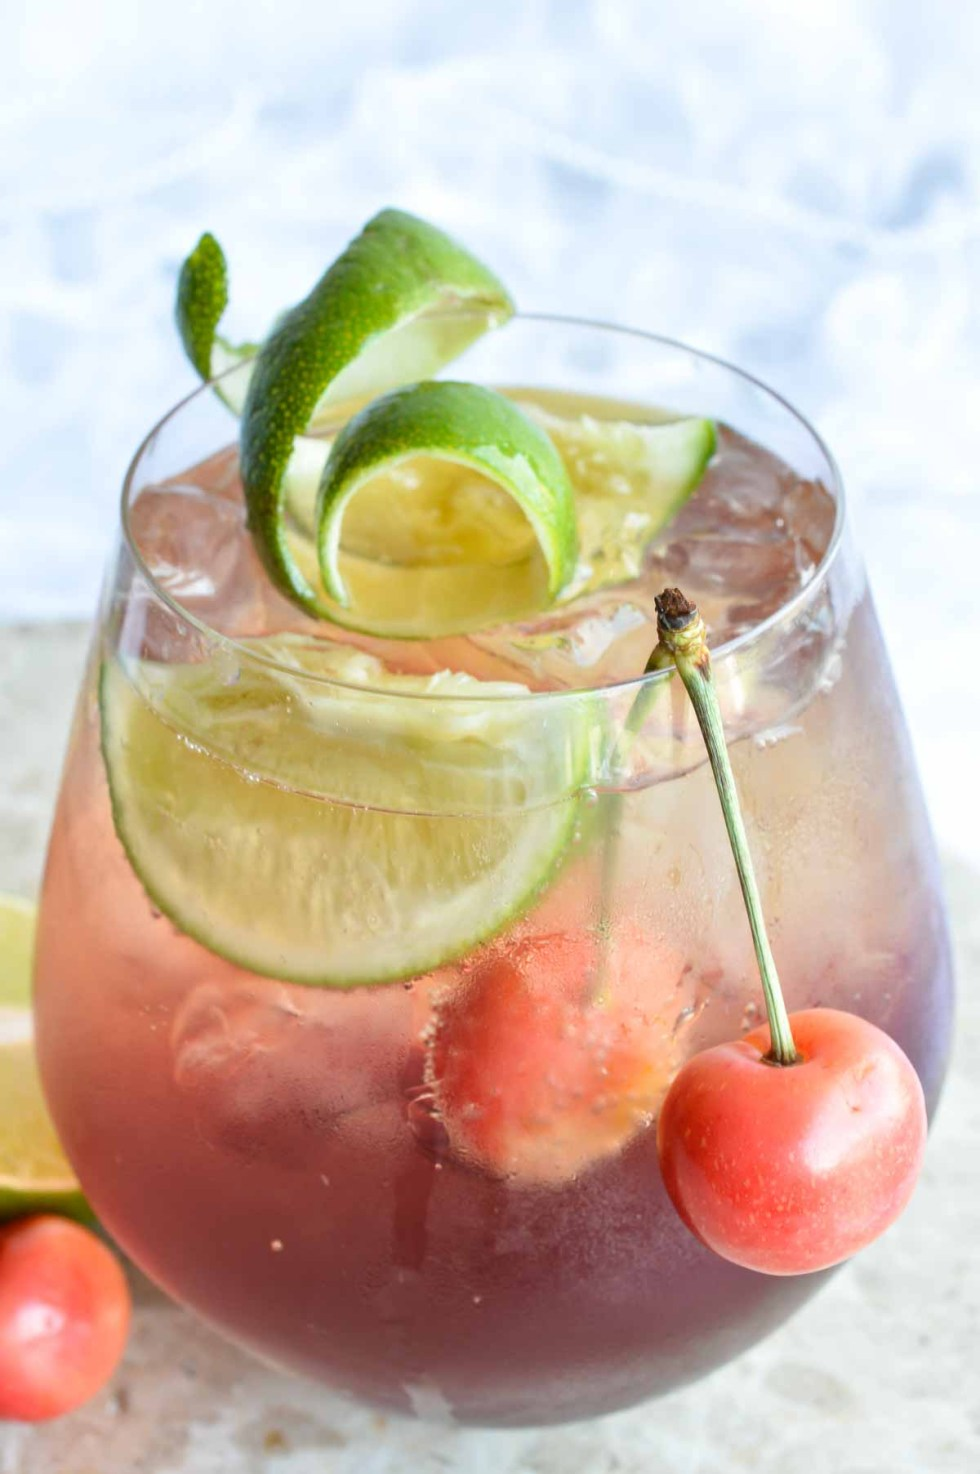 This Shirley Temple Cocktail Recipe is an easy and refreshing party drink. Also known as a Dirty Shirley; a blend of cherry, lime, rum or vodka and fizzy sparkling Dasani.